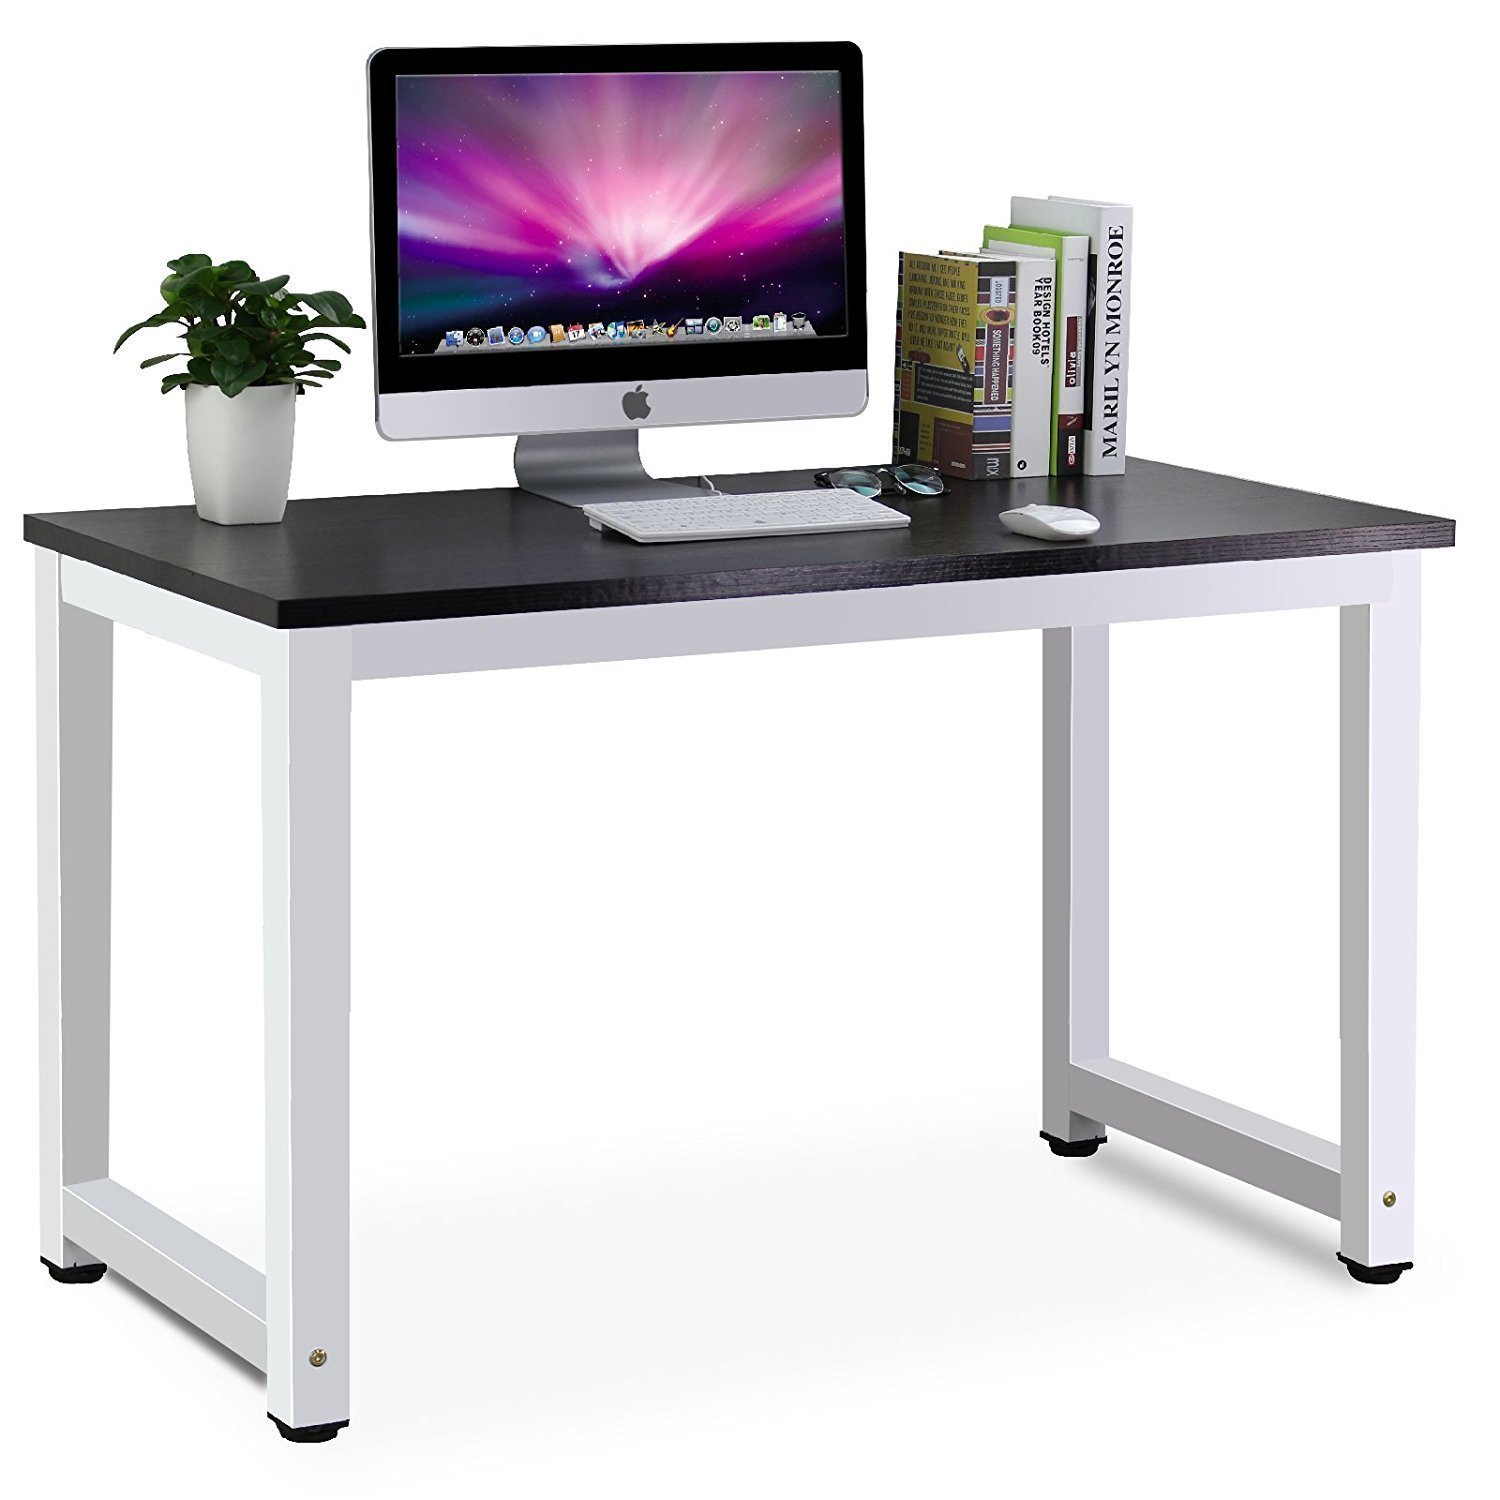 Amazon.com : Tribesigns Modern Simple Style Computer Desk PC Laptop ...